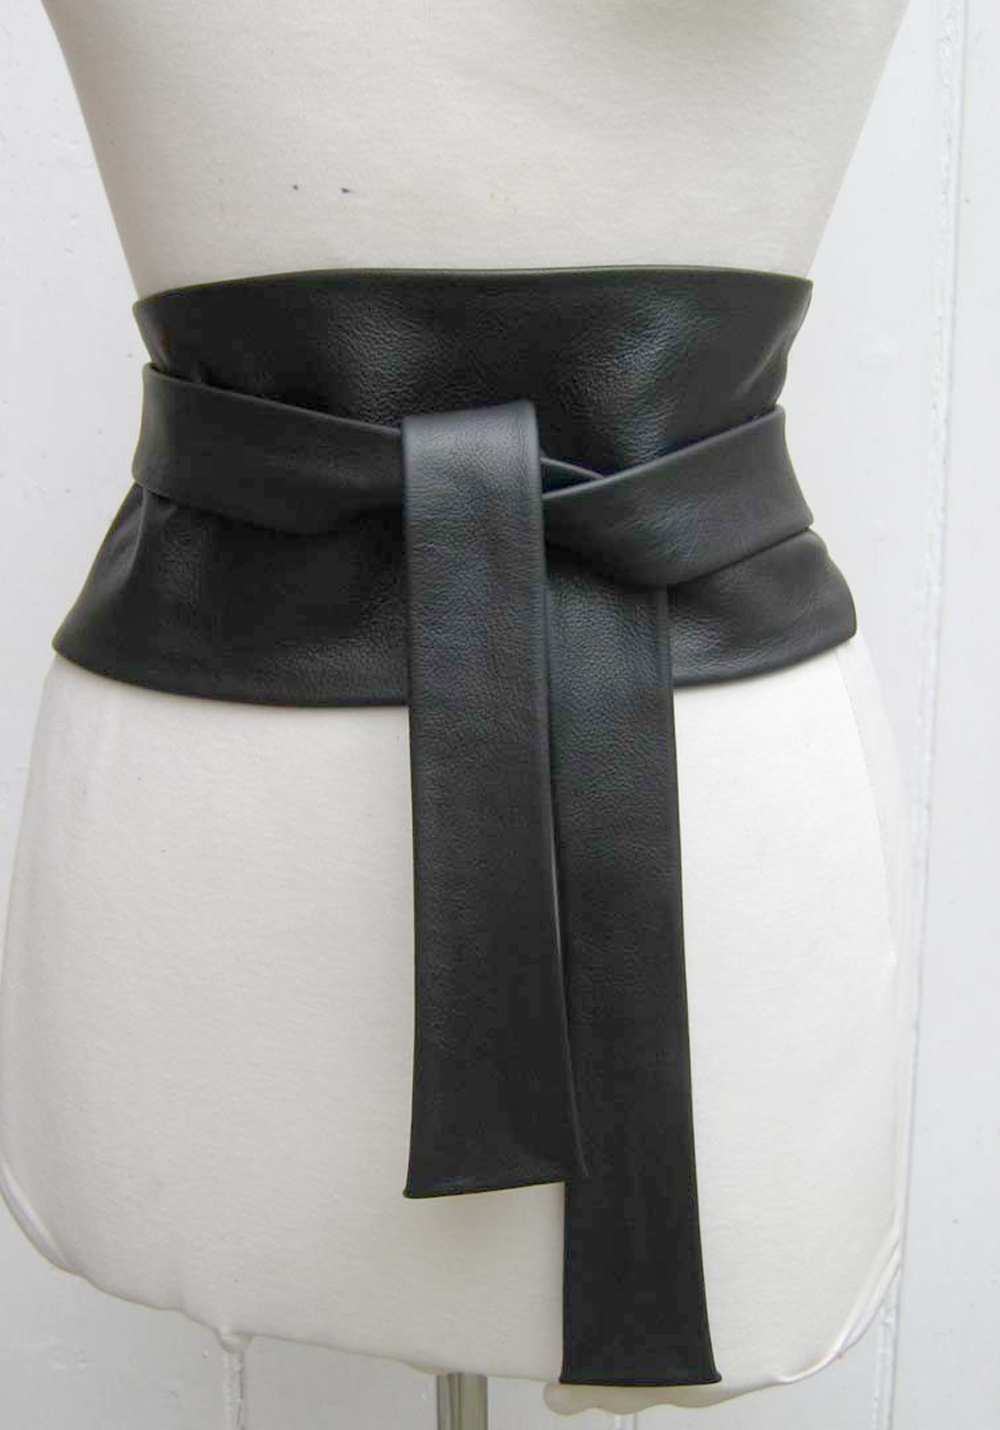 artybecca belts leather wraps and ribbons